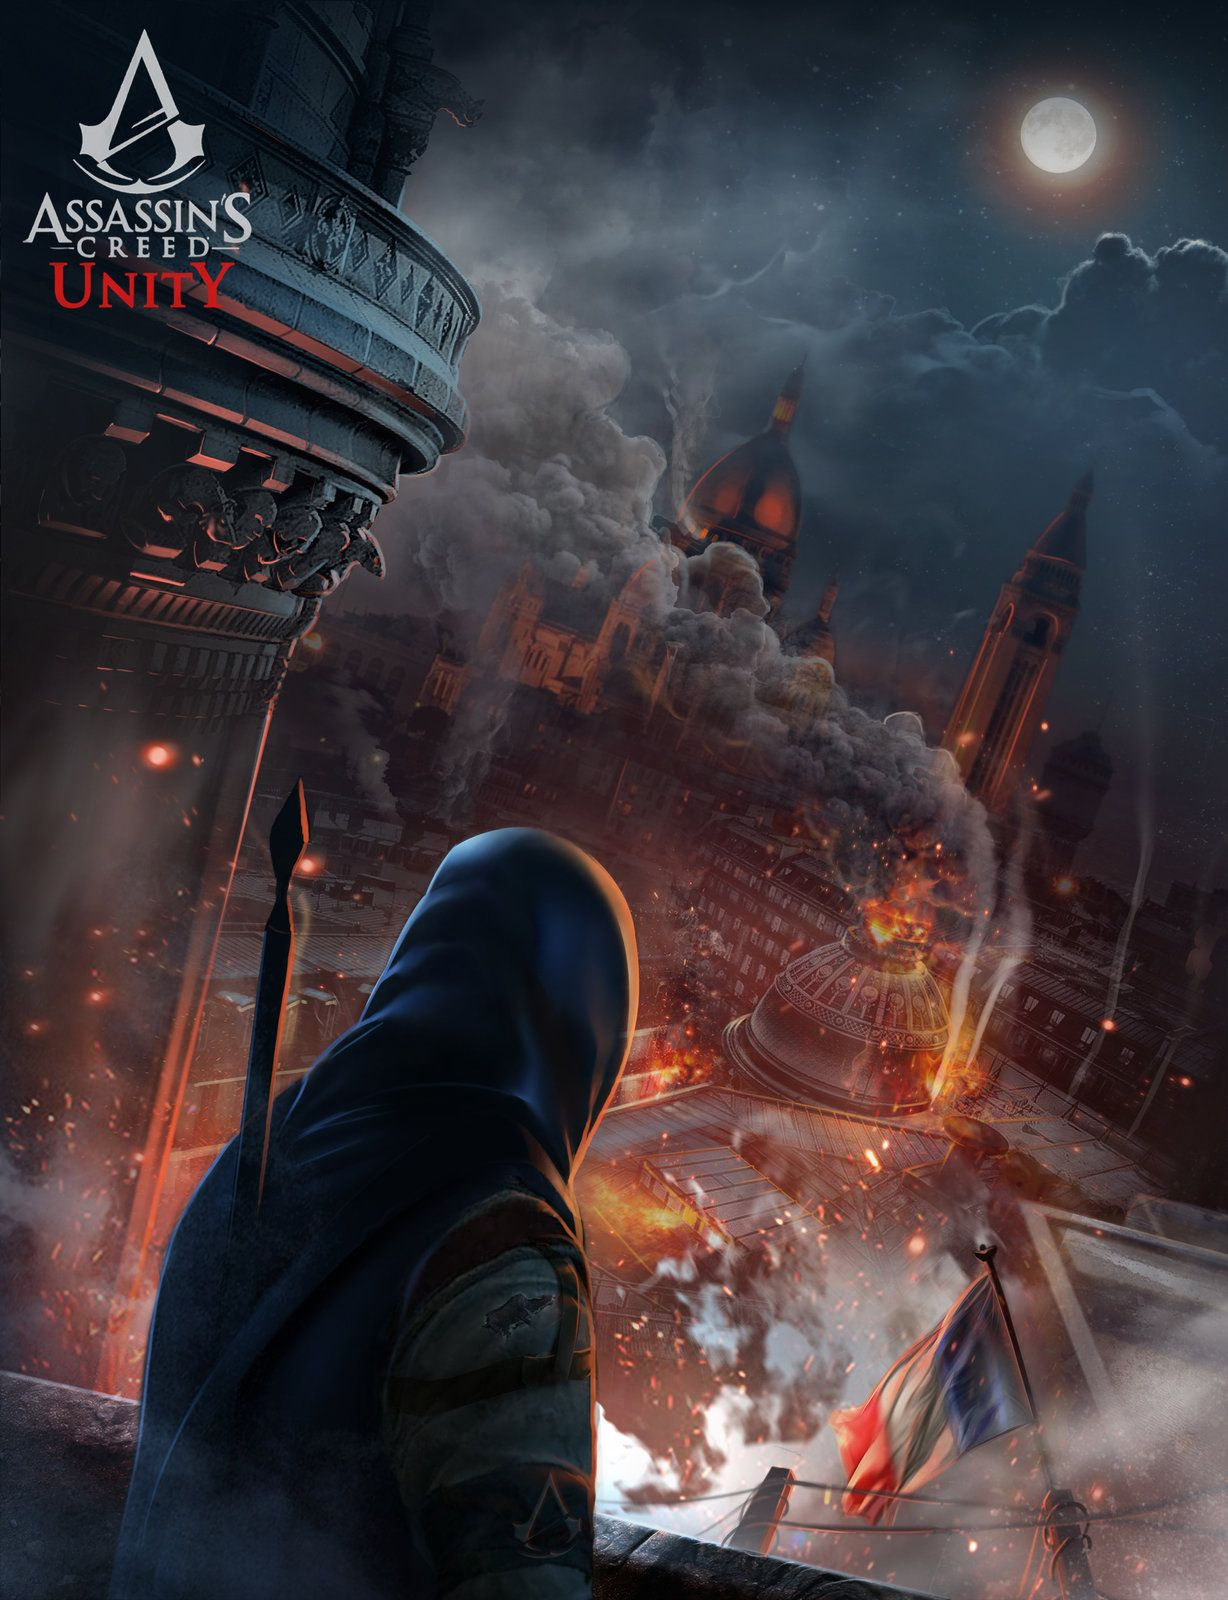 Assassin's Creed Art Exhibition, Giovanni Maisto on ArtStation at http://www.artstation.com/artwork/assassin-s-creed-art-exhibition-dabf8cdd-660d-4b5b-8d31-55f2c93f2a32